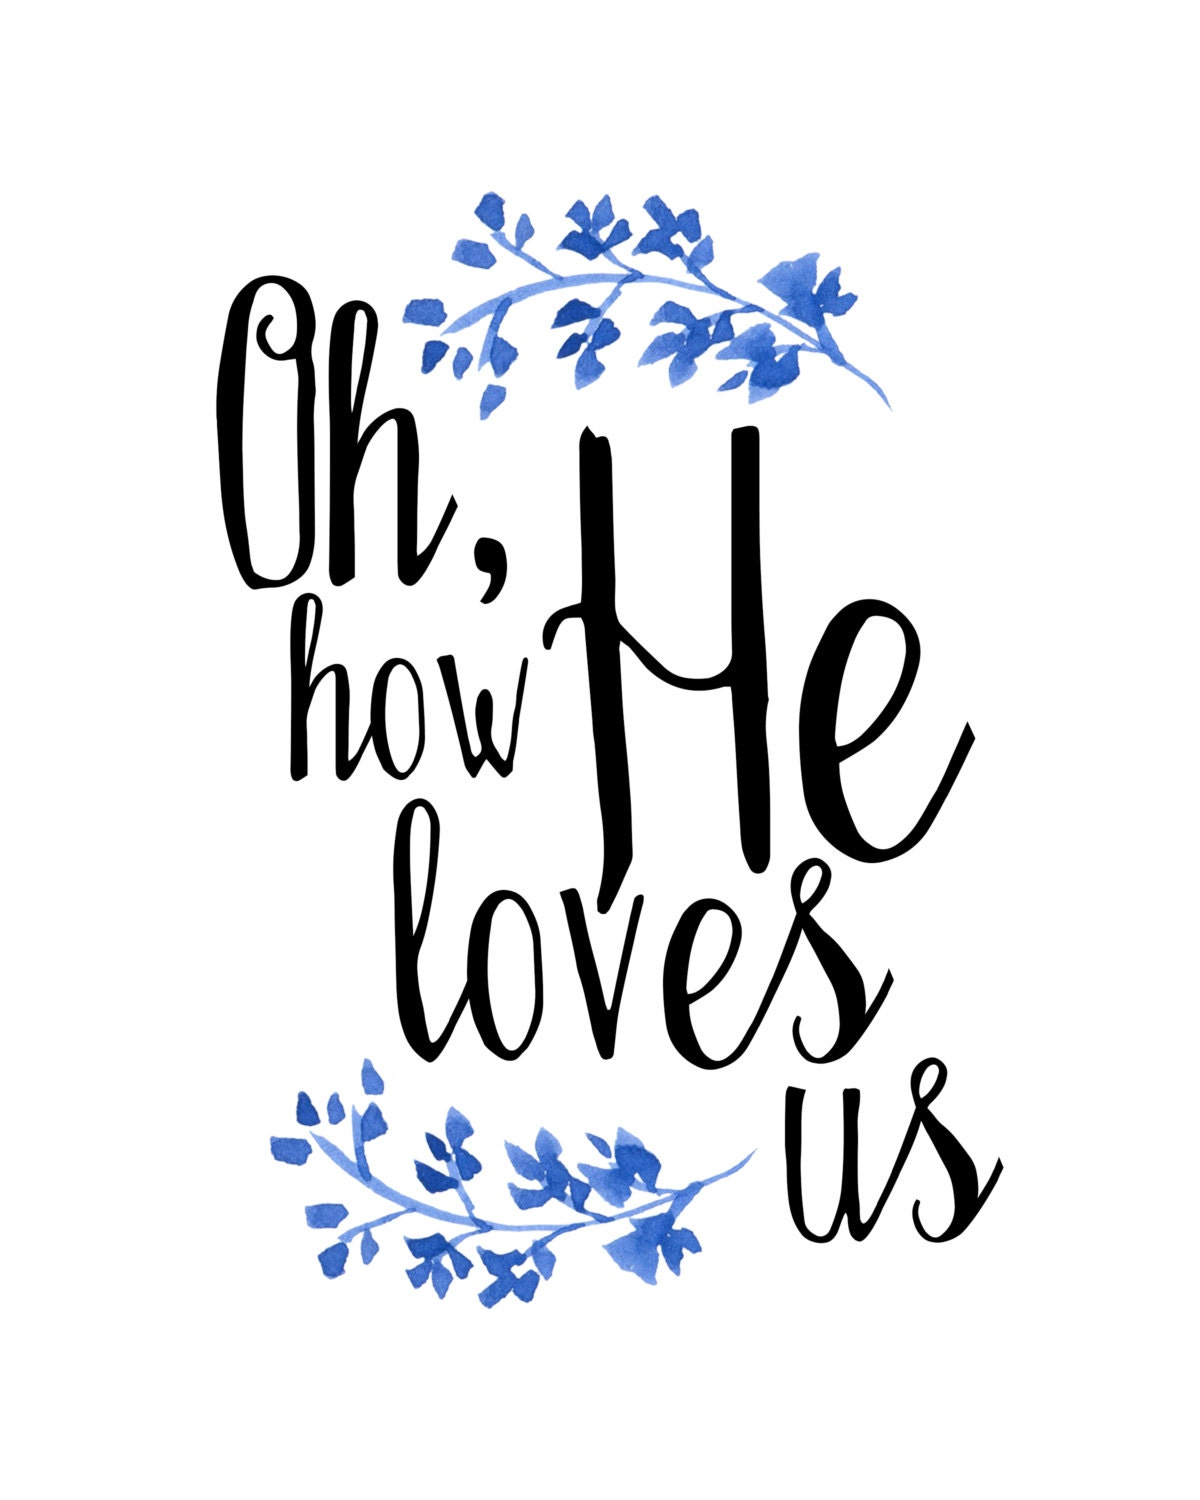 Free Christian Quotes: Oh How He Loves Us Print David Crowder By Bridgetmariedesigns